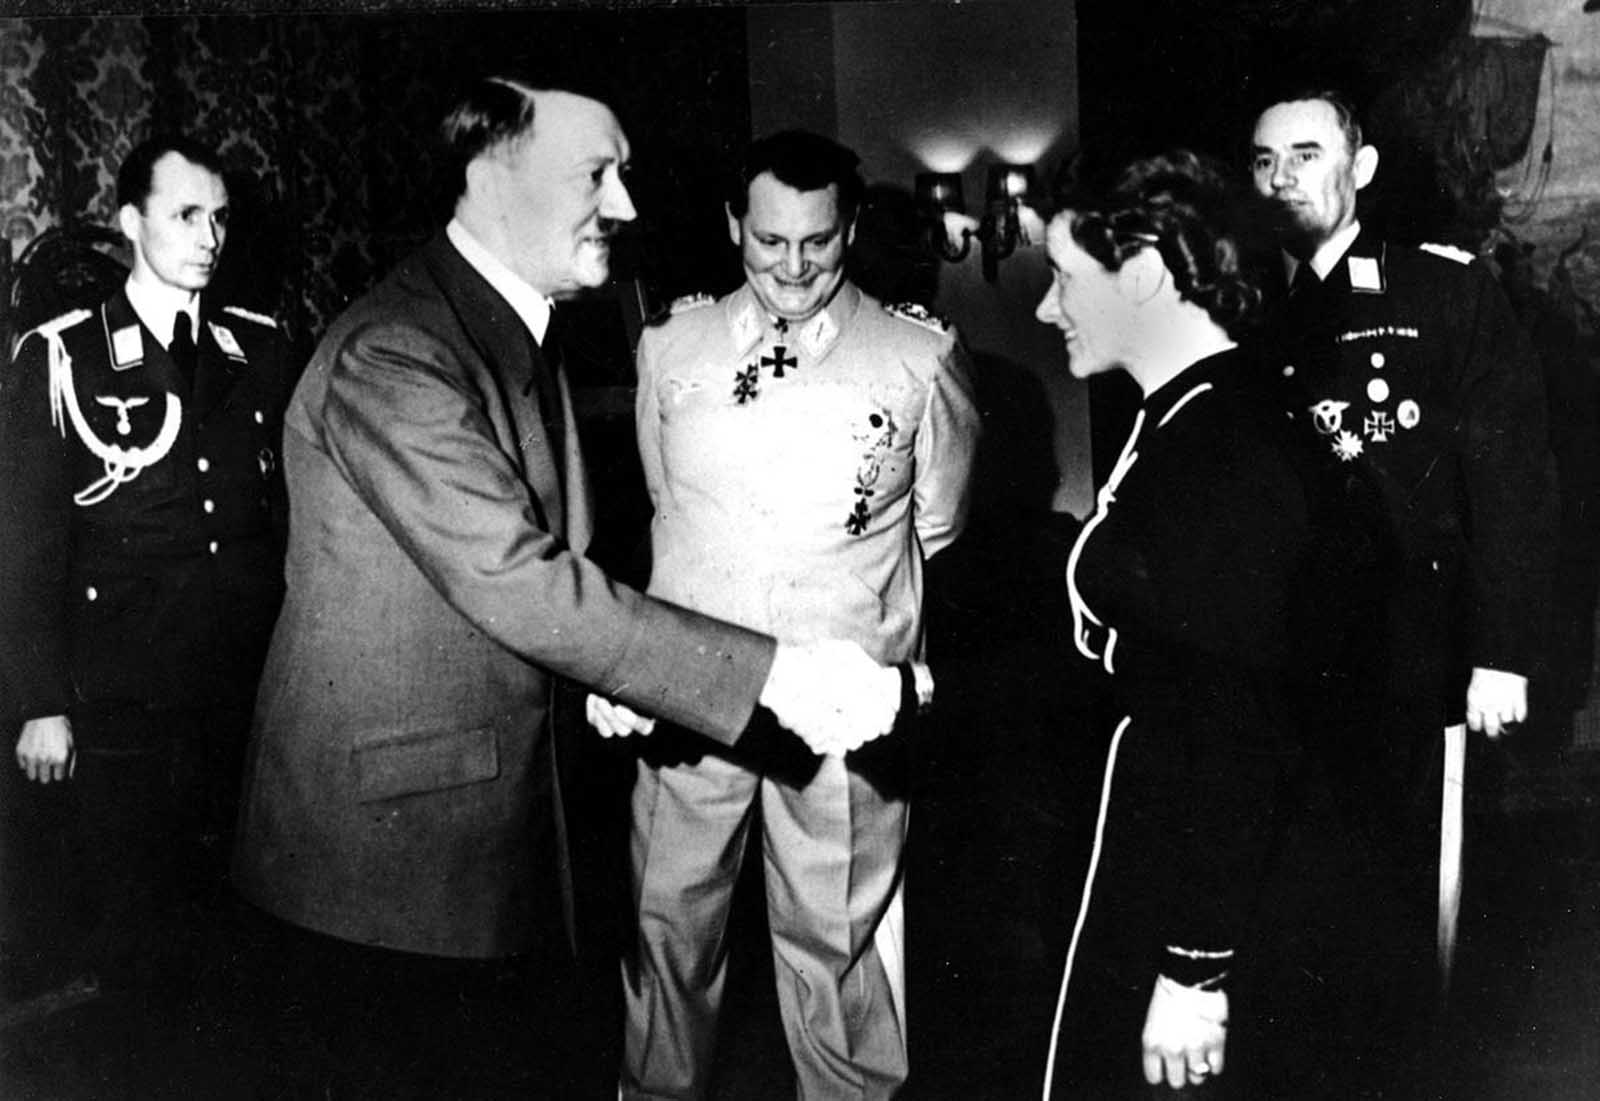 he German Aviatrix, Captain Hanna Reitsch, shakes hands with German chancellor Adolf Hitler after being awarded the Iron Cross second class at the Reich Chancellory in Berlin, Germany, in April 1941, for her service in the development of airplane armament instruments during World War II. In back, center is Reichsmarshal Hermann Goering. At the extreme right is Lt. Gen. Karl Bodenschatz of the German air ministry.